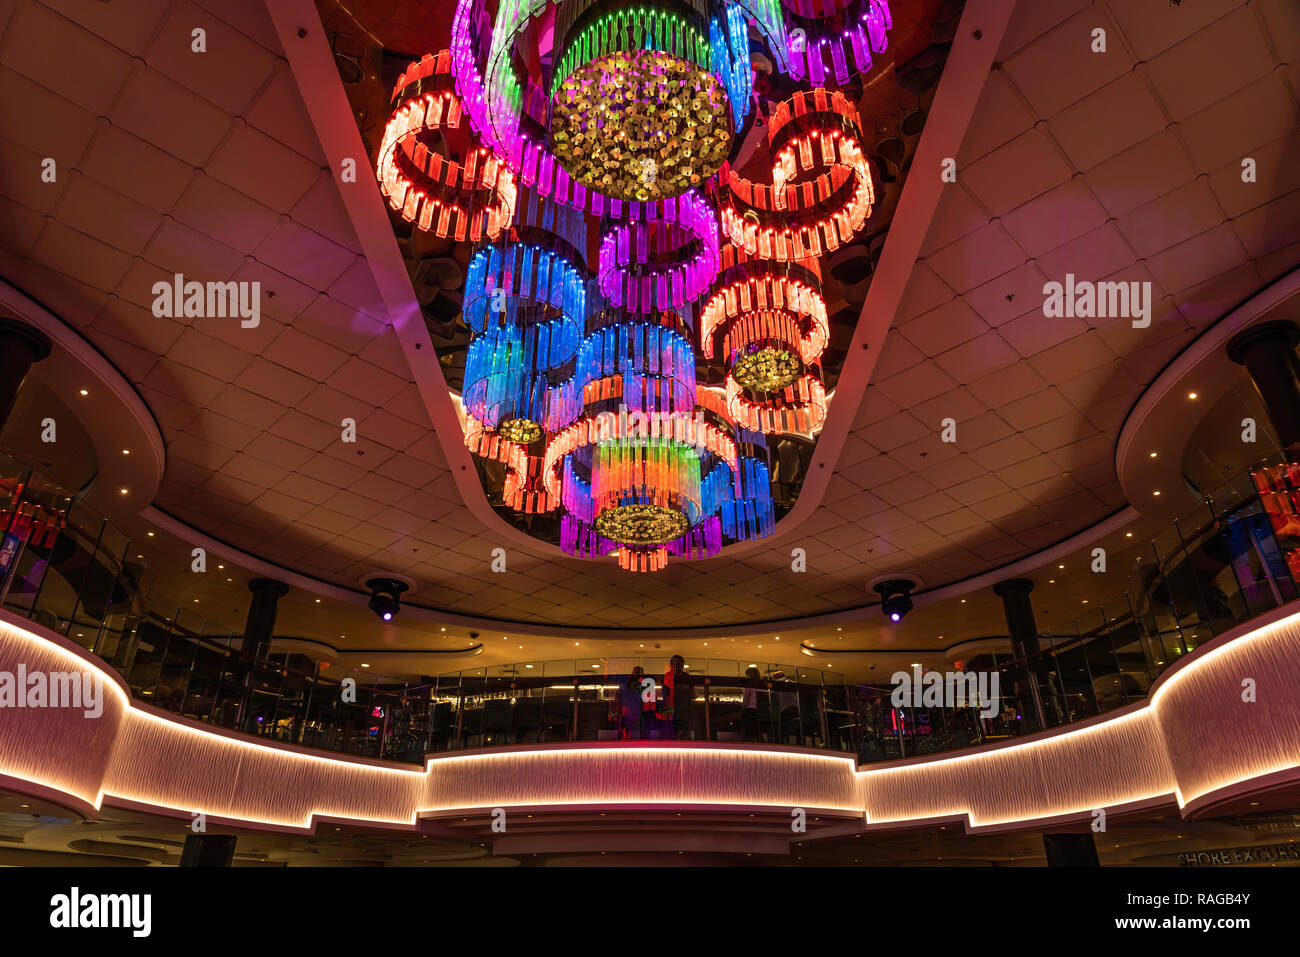 A large colorful light fixture in the atrium of the cruise ship Norwegian Jade. - Stock Image